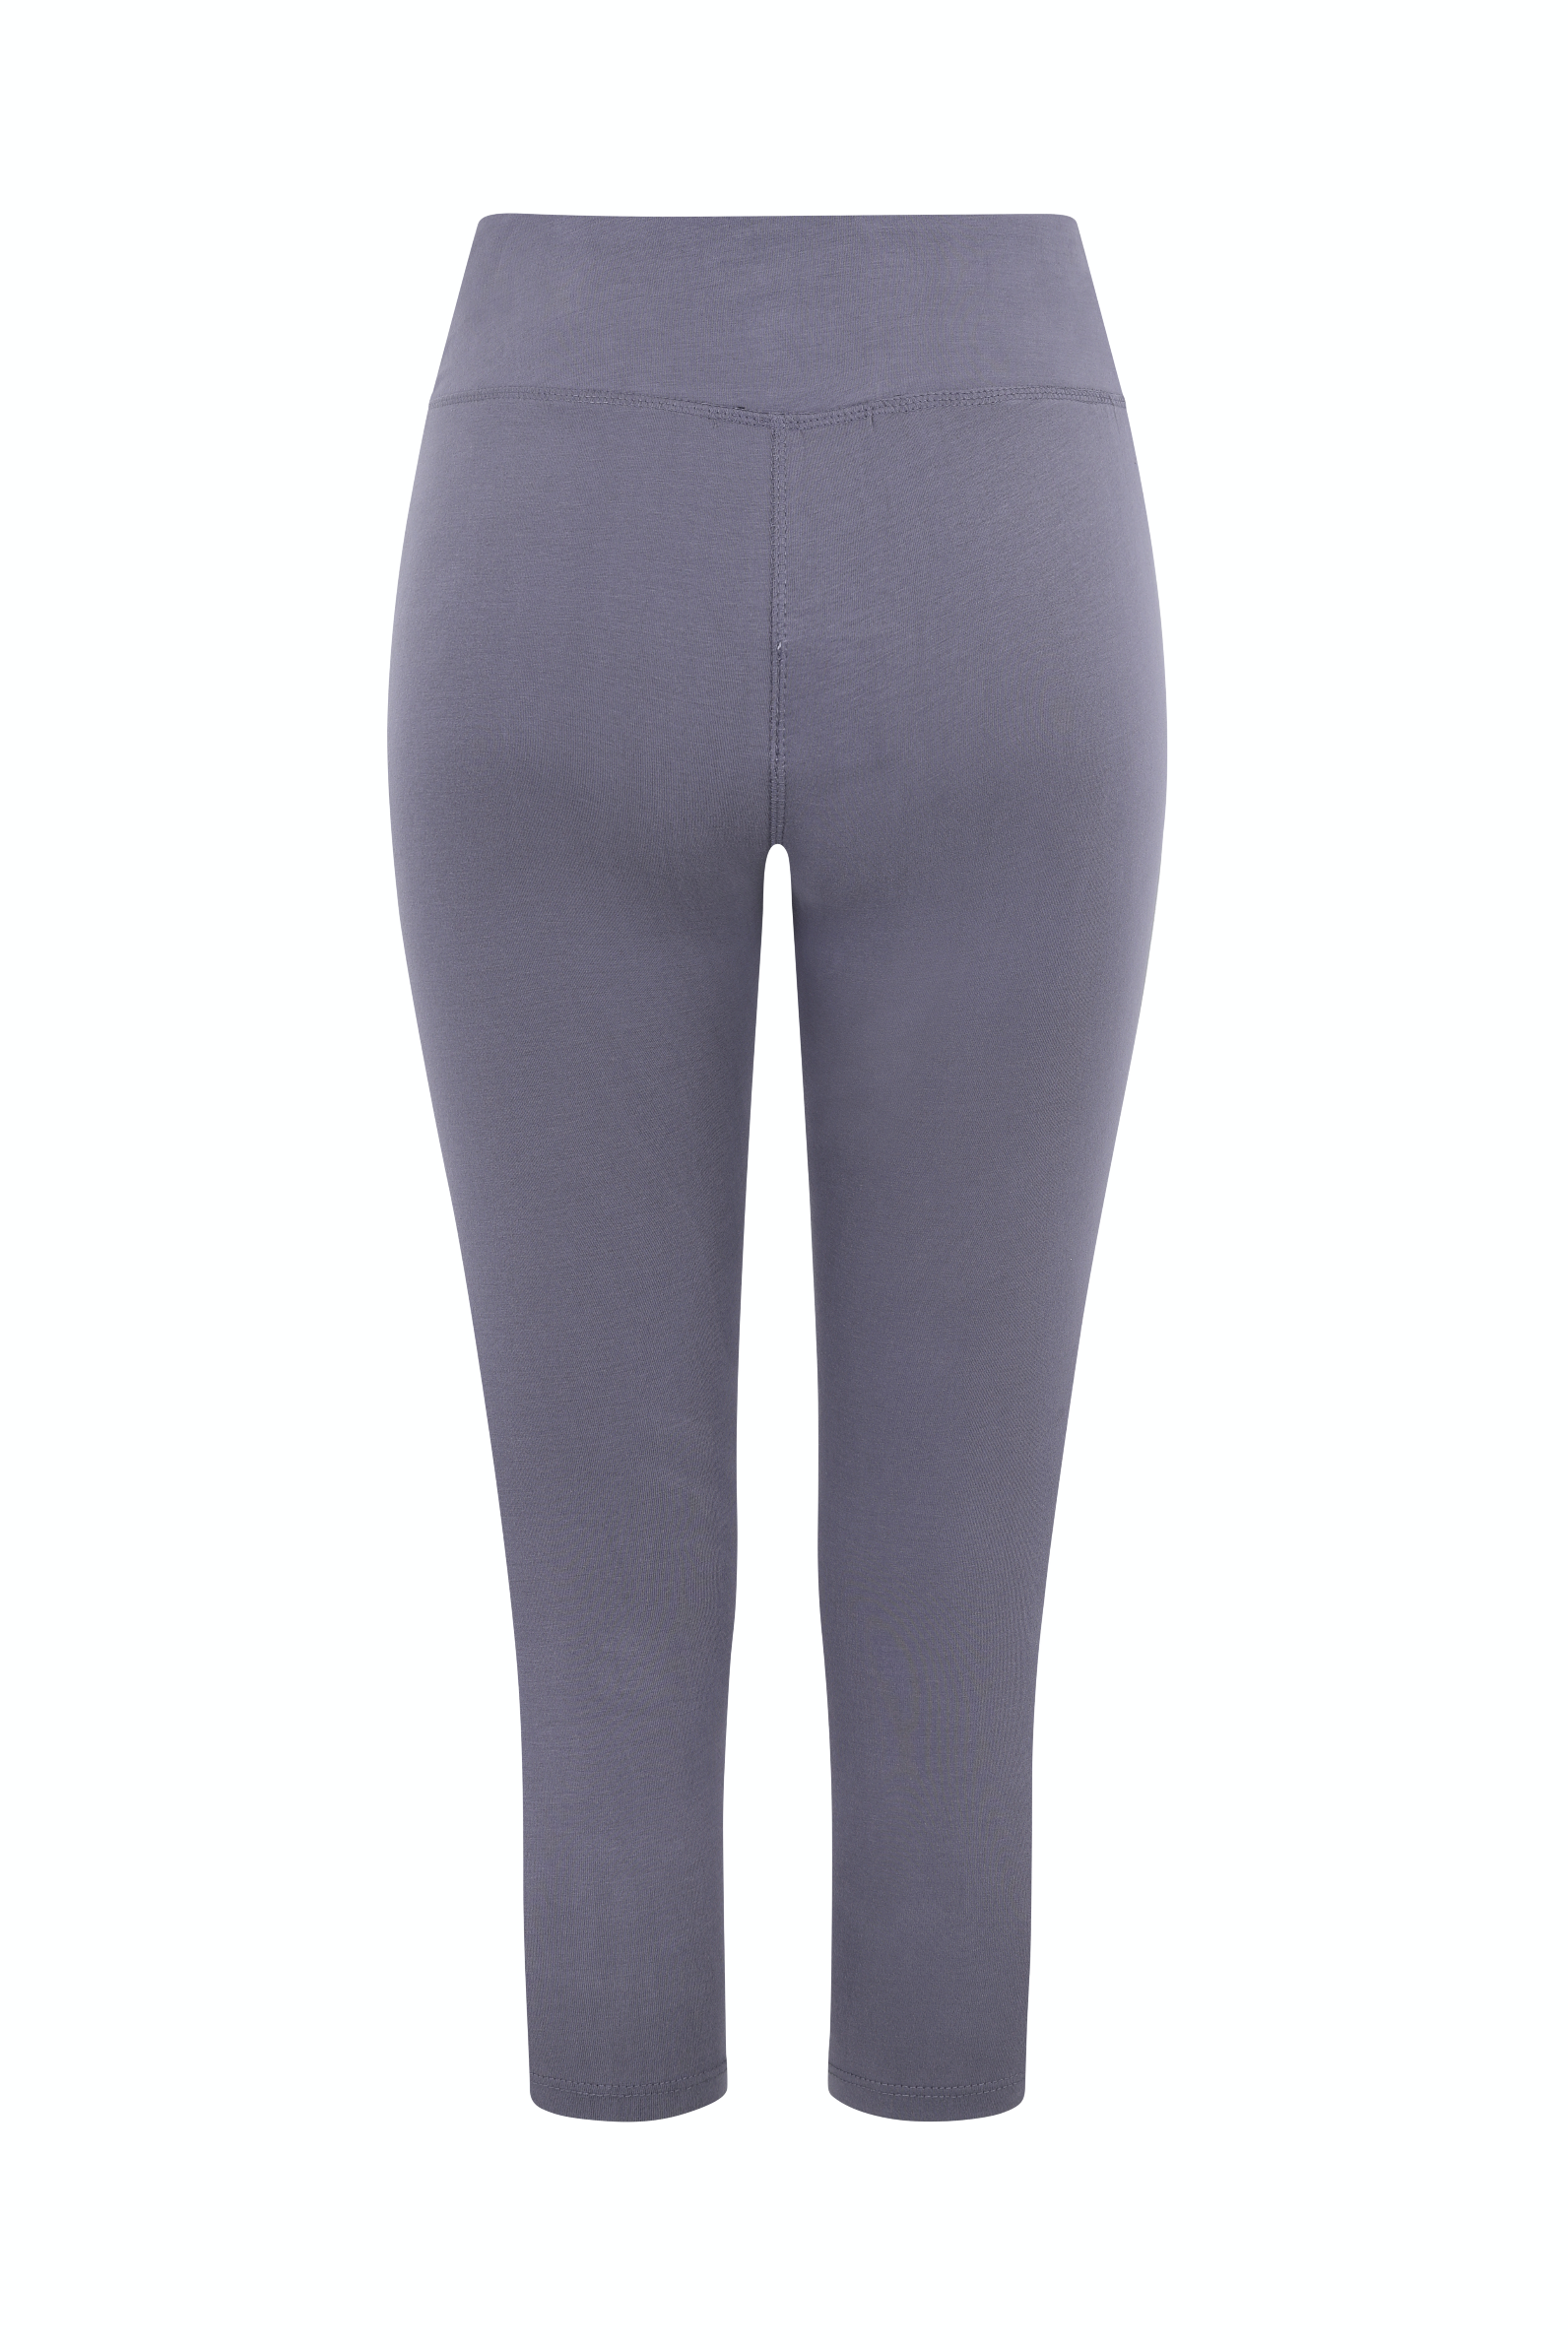 Island Leggings - Charcoal